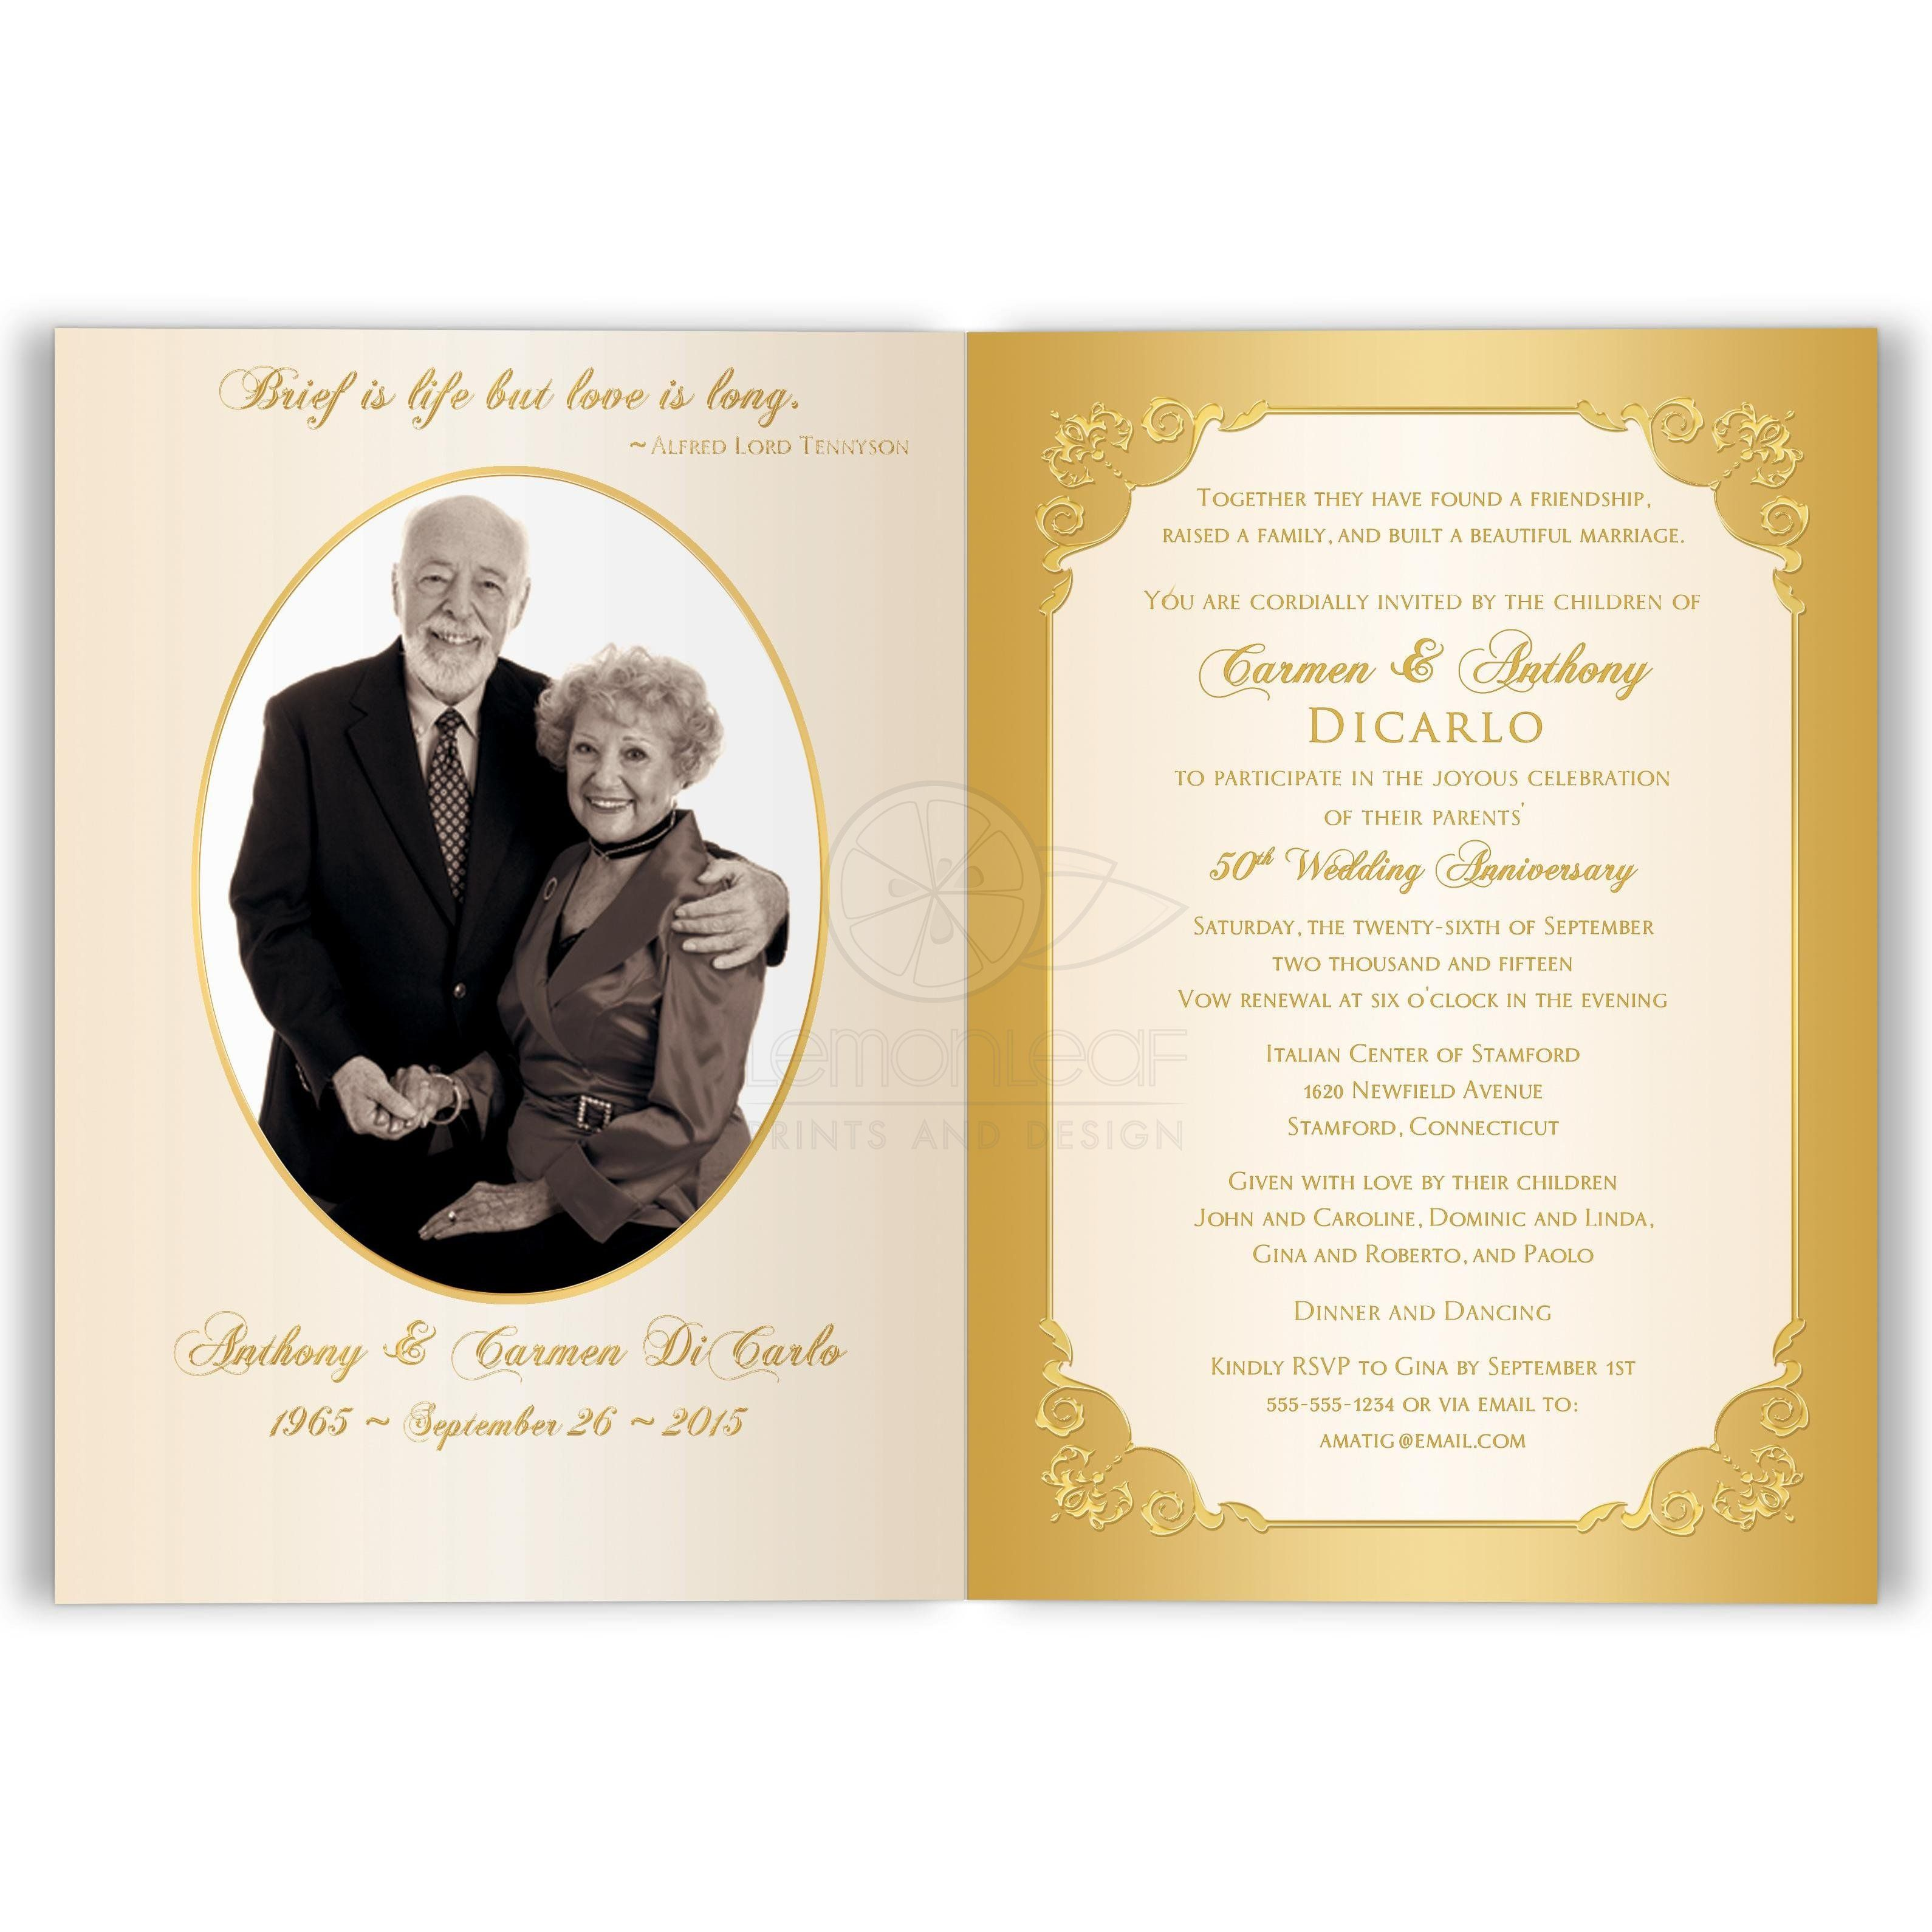 50th Wedding Anniversary Invitation Double Photo Ivory Gold Floral Printed Bow Wedding Anniversary Invitations Golden Wedding Anniversary Card Anniversary Invitations